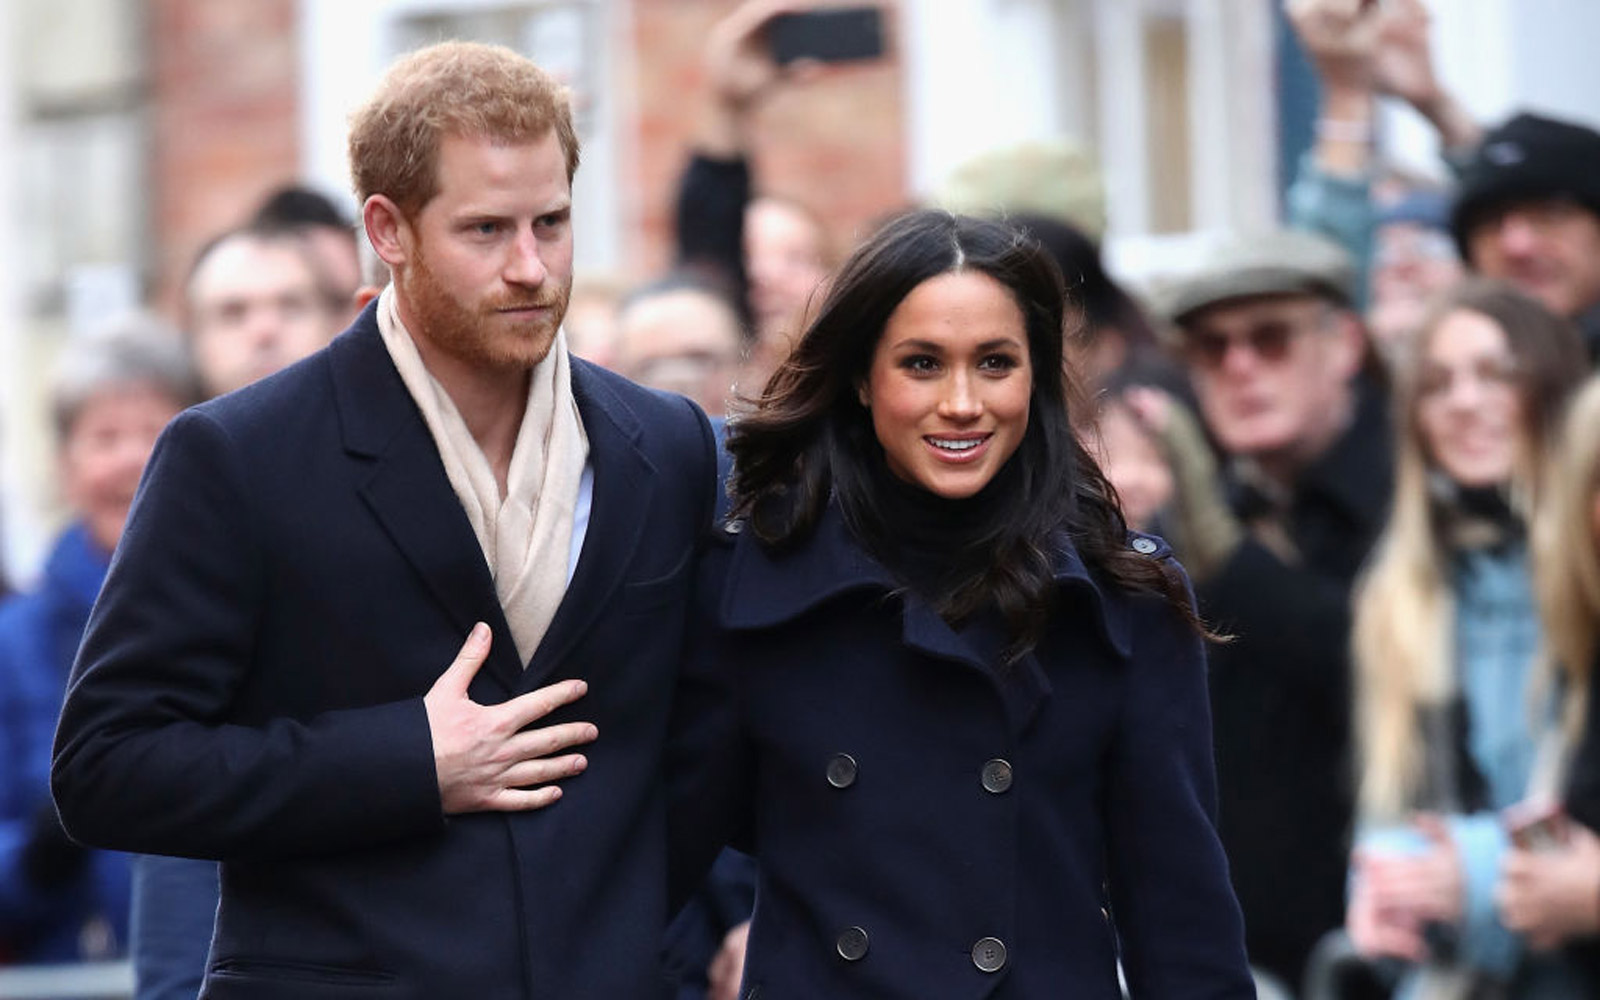 Meghan Markle and Prince Harry Meet With Fans for First Time As Engaged Couple